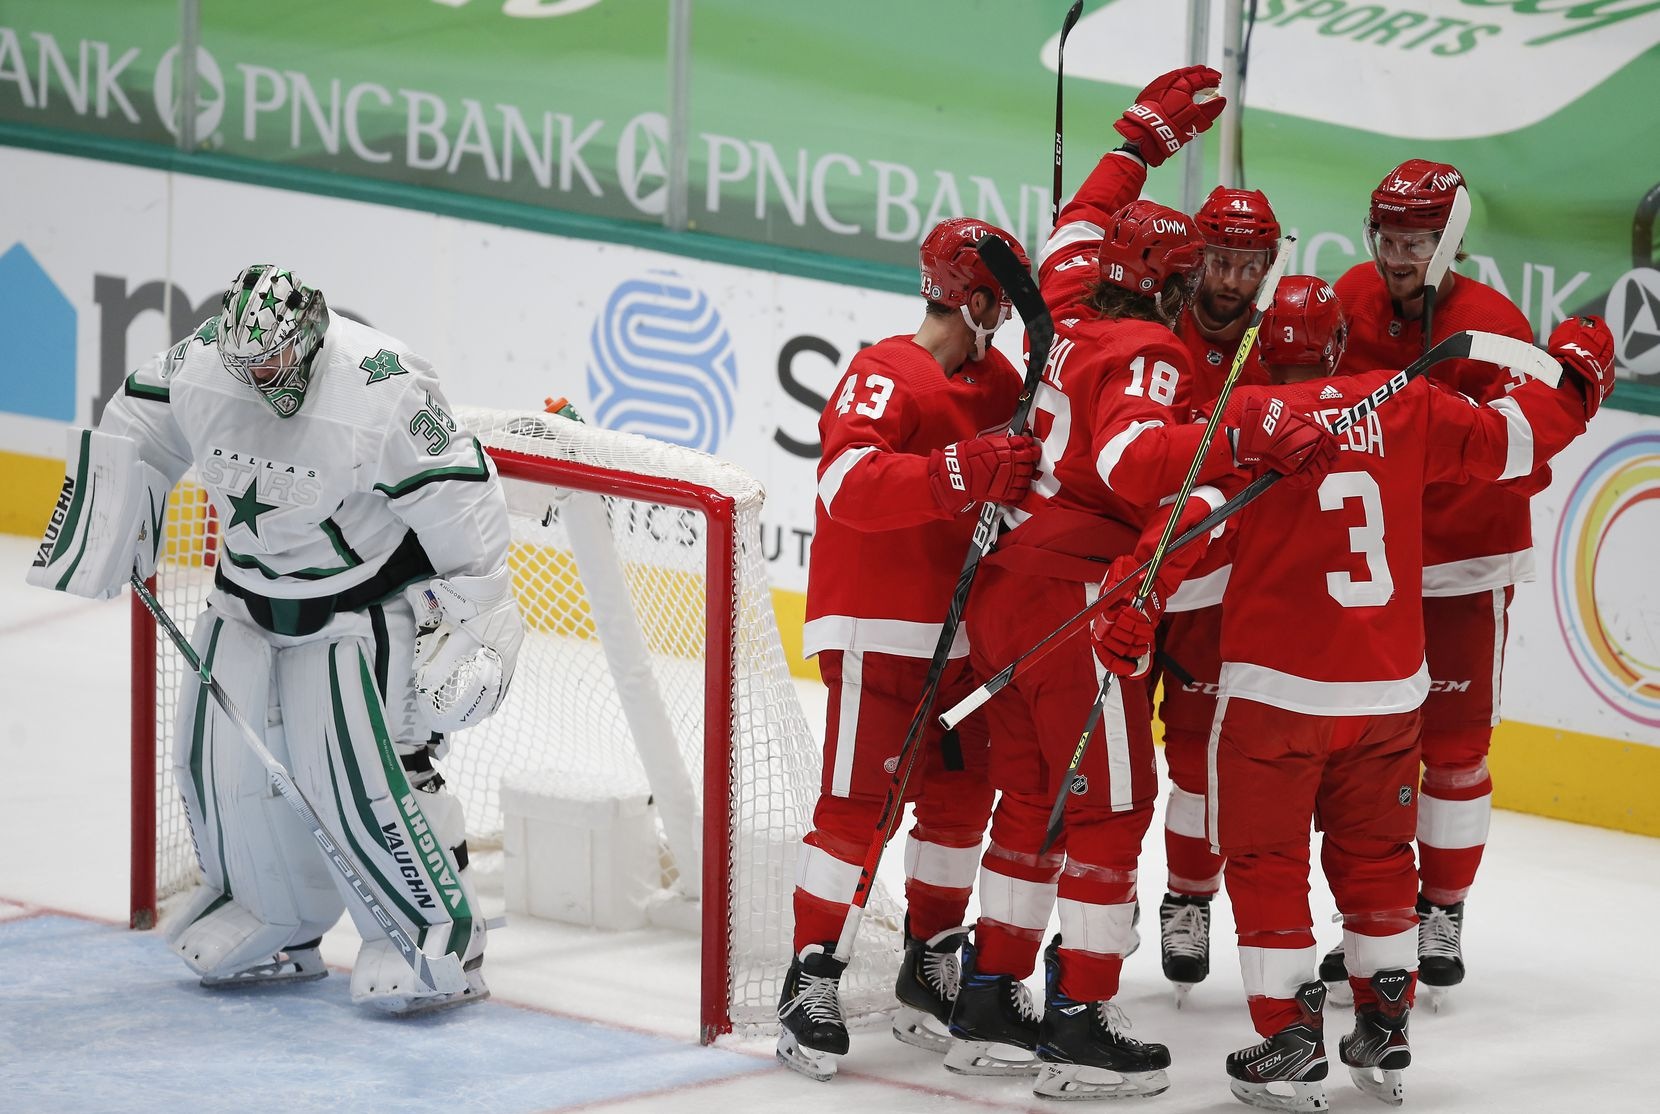 Dallas Stars goaltender Anton Khudobin (35) looks on as Detroit Red Wings forward Luke Glendening, third from left, is congratulated by teammates after scoring a goal during the second period of an NHL hockey game in Dallas, Monday, April 19, 2021. (Brandon Wade/Special Contributor)